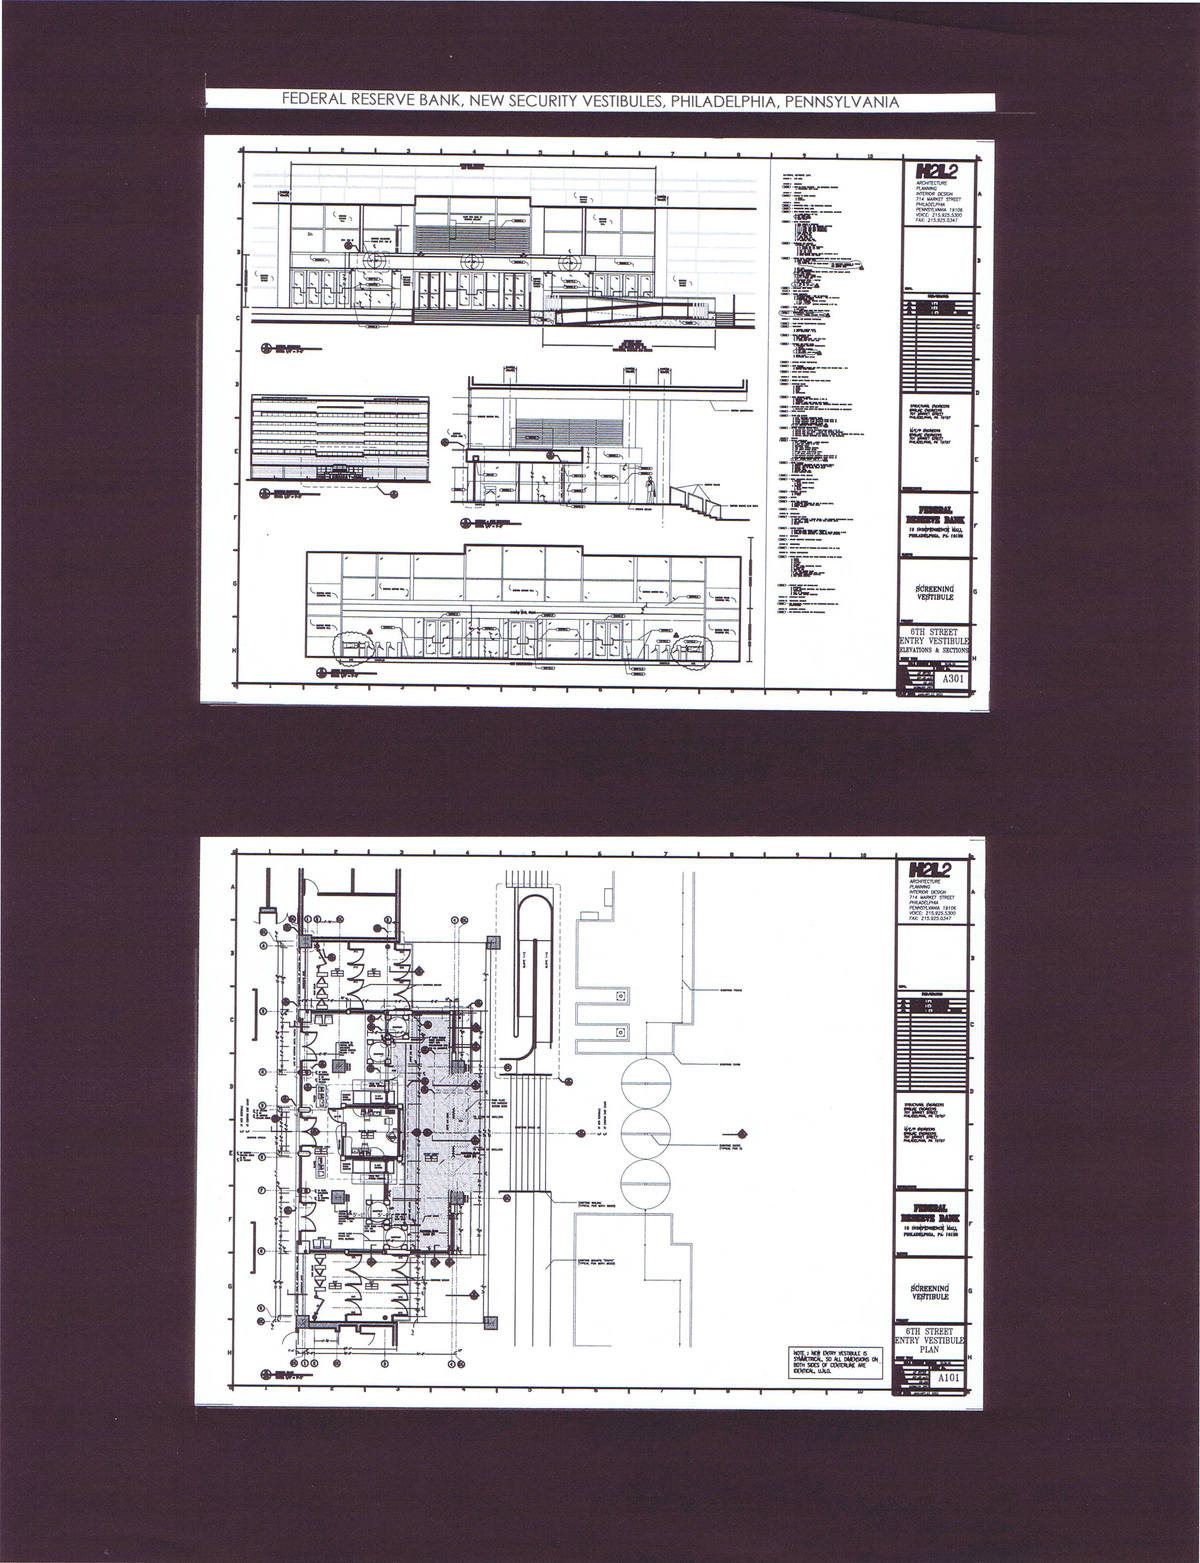 6th Street Entry Vestibule, Elevation, Section, Floor Plan